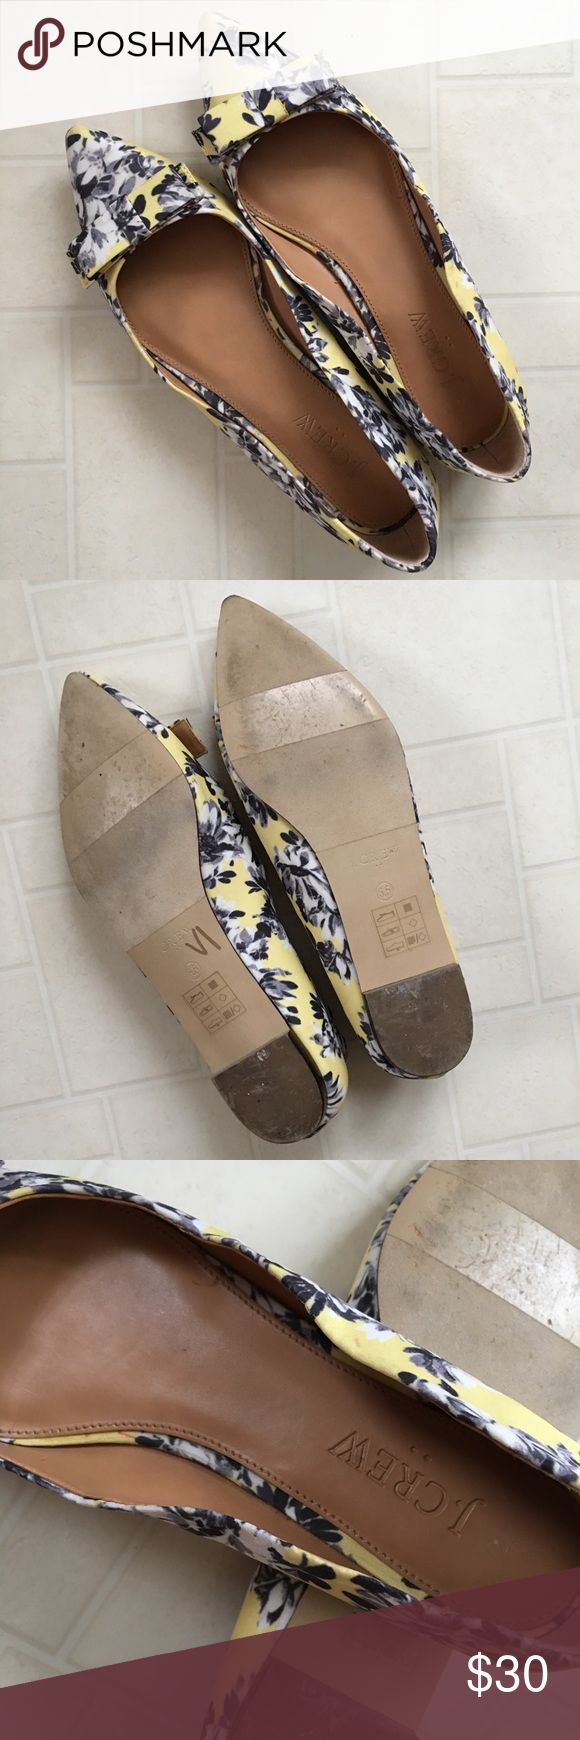 J. Crew Amelia Yellow Floral Ballet Flats EUC as shown. Super precious shoes. Buy with confidence I'm a top 10% poshmark seller and a Poshmark Ambassador. J. Crew Shoes Flats & Loafers